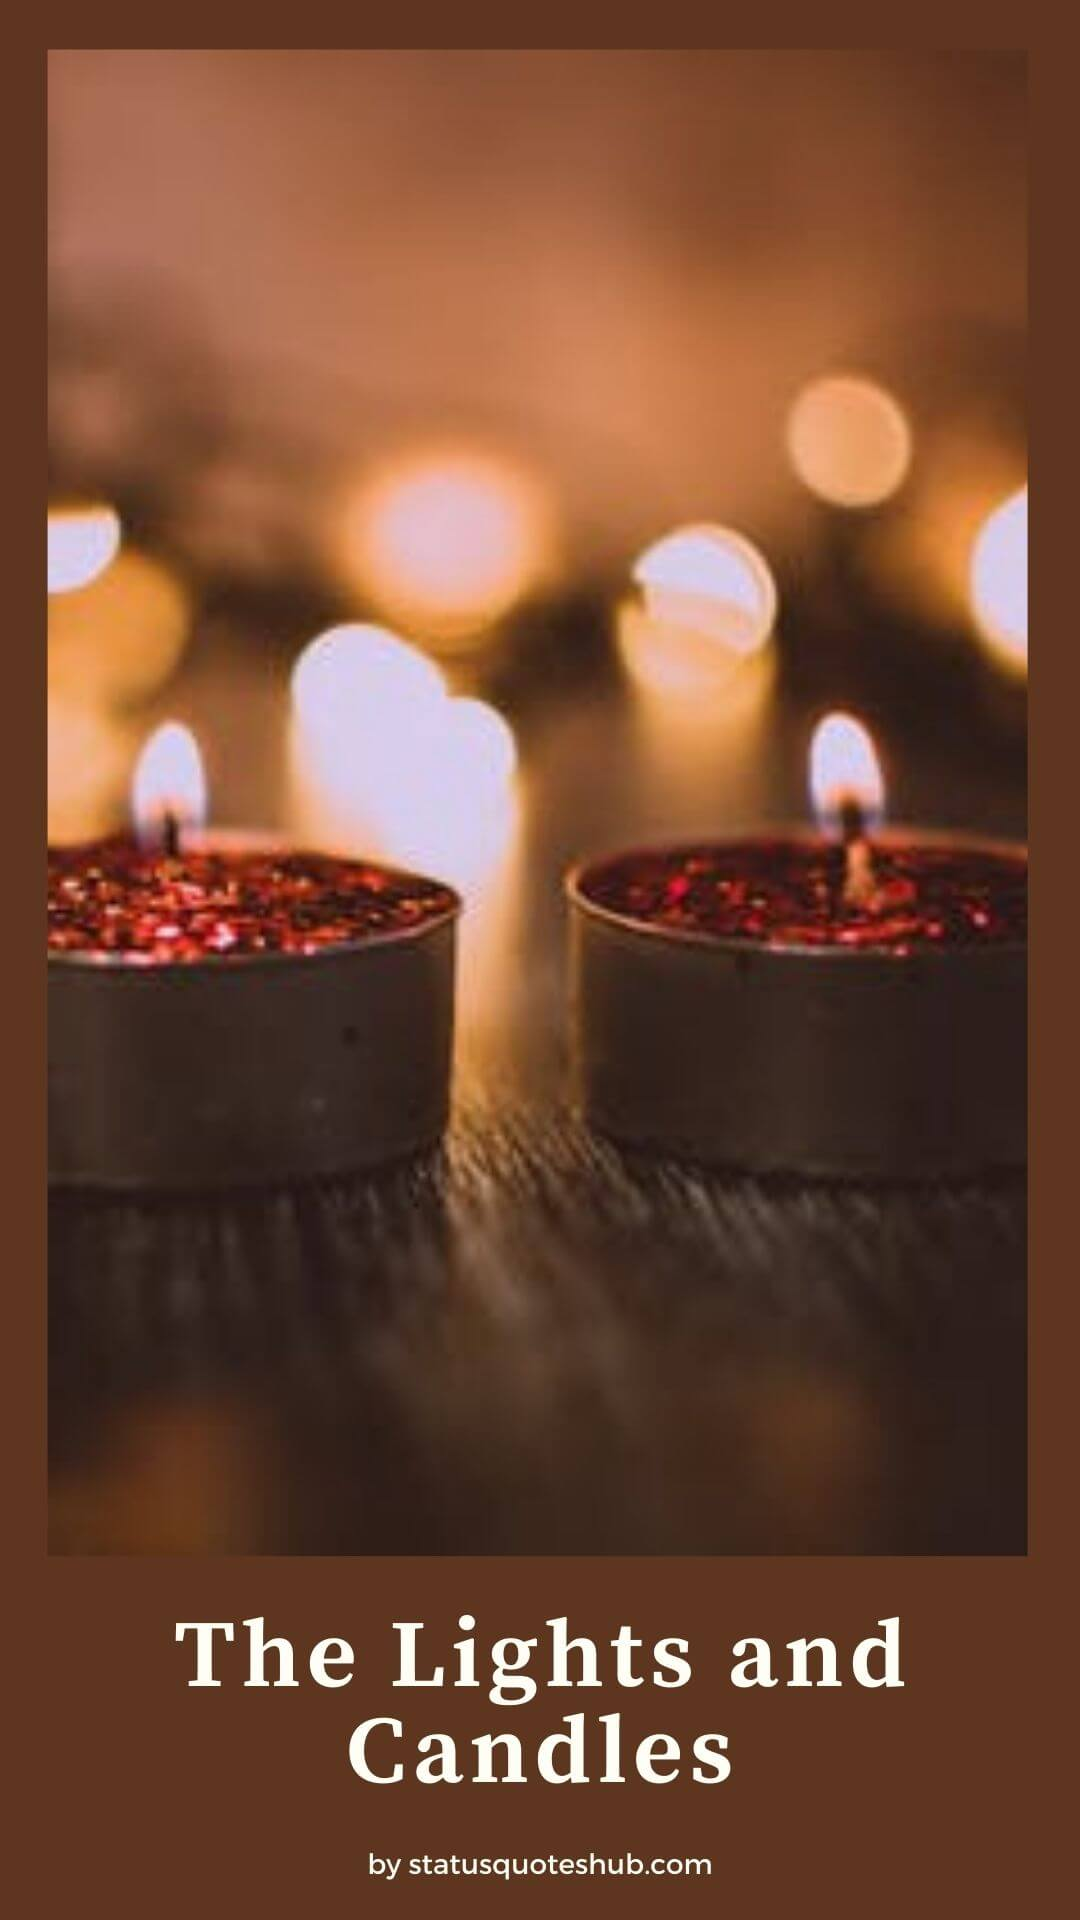 The lights and candles